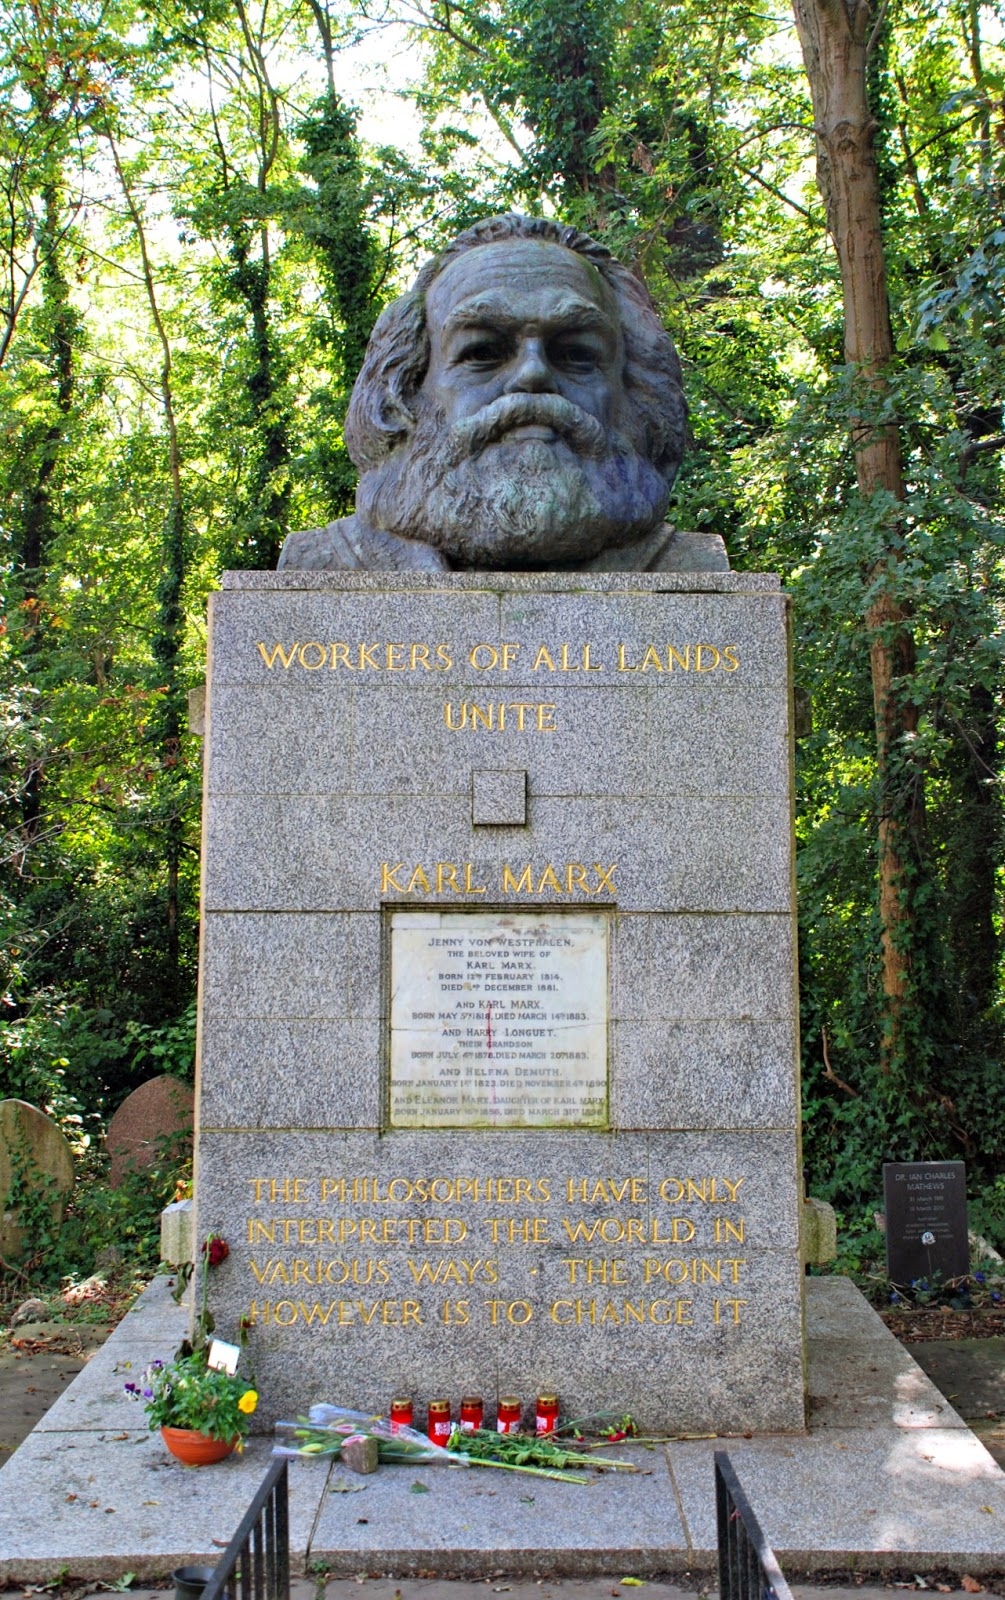 Karl Marx's memorial, Highgate Cemetery, London